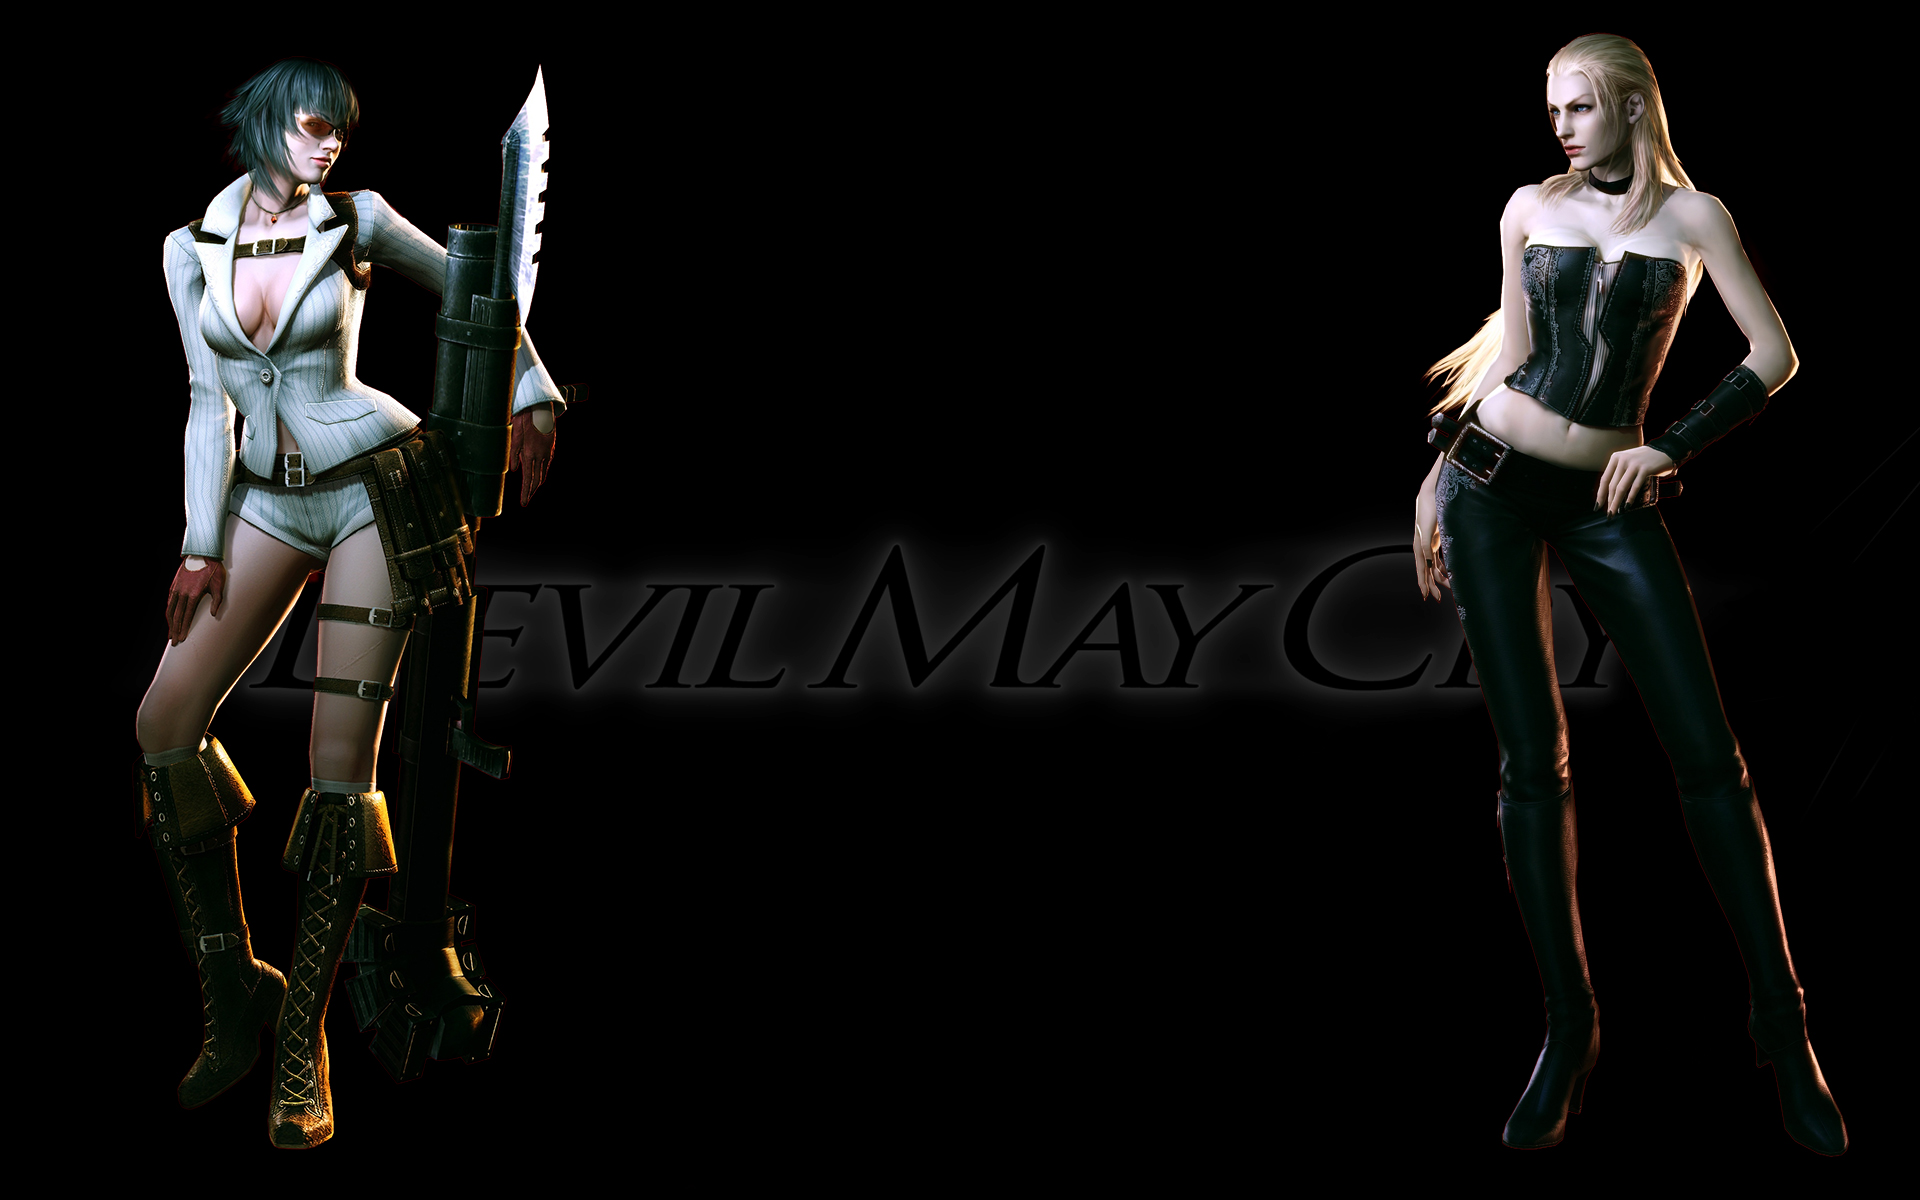 Devil May Cry 4 Girls Hd By Madein1985 On Deviantart